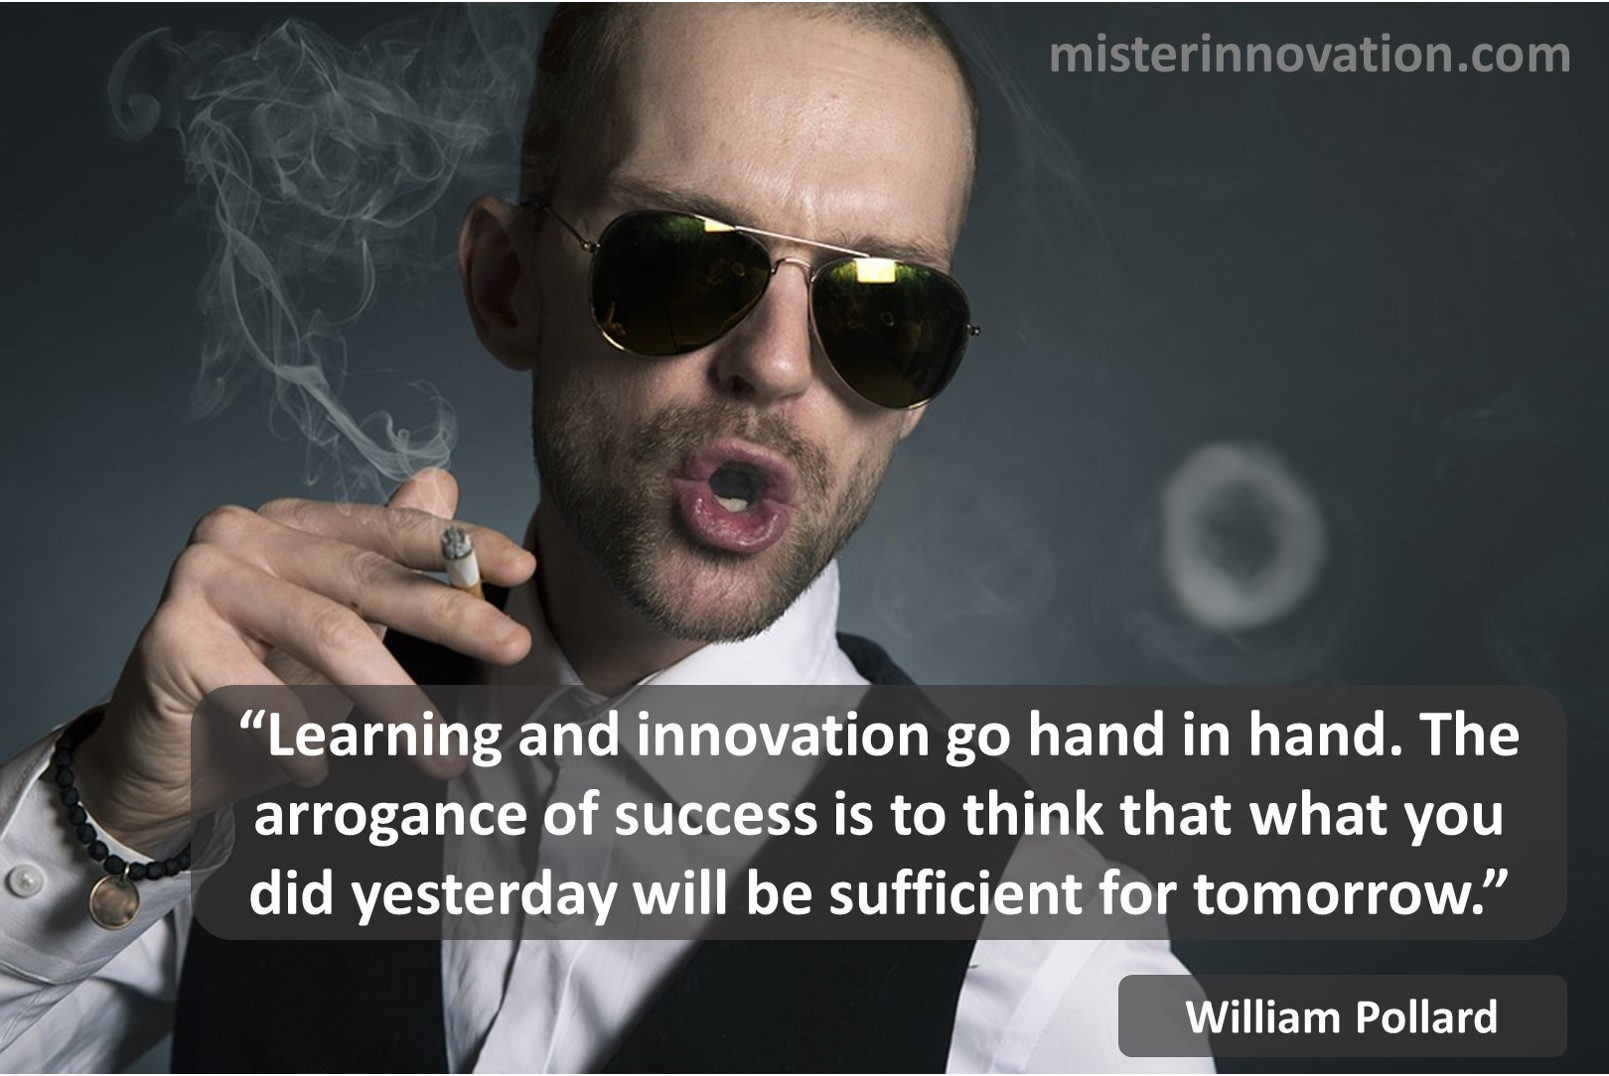 William Pollard Quote on Innovation Learning and Arrogance